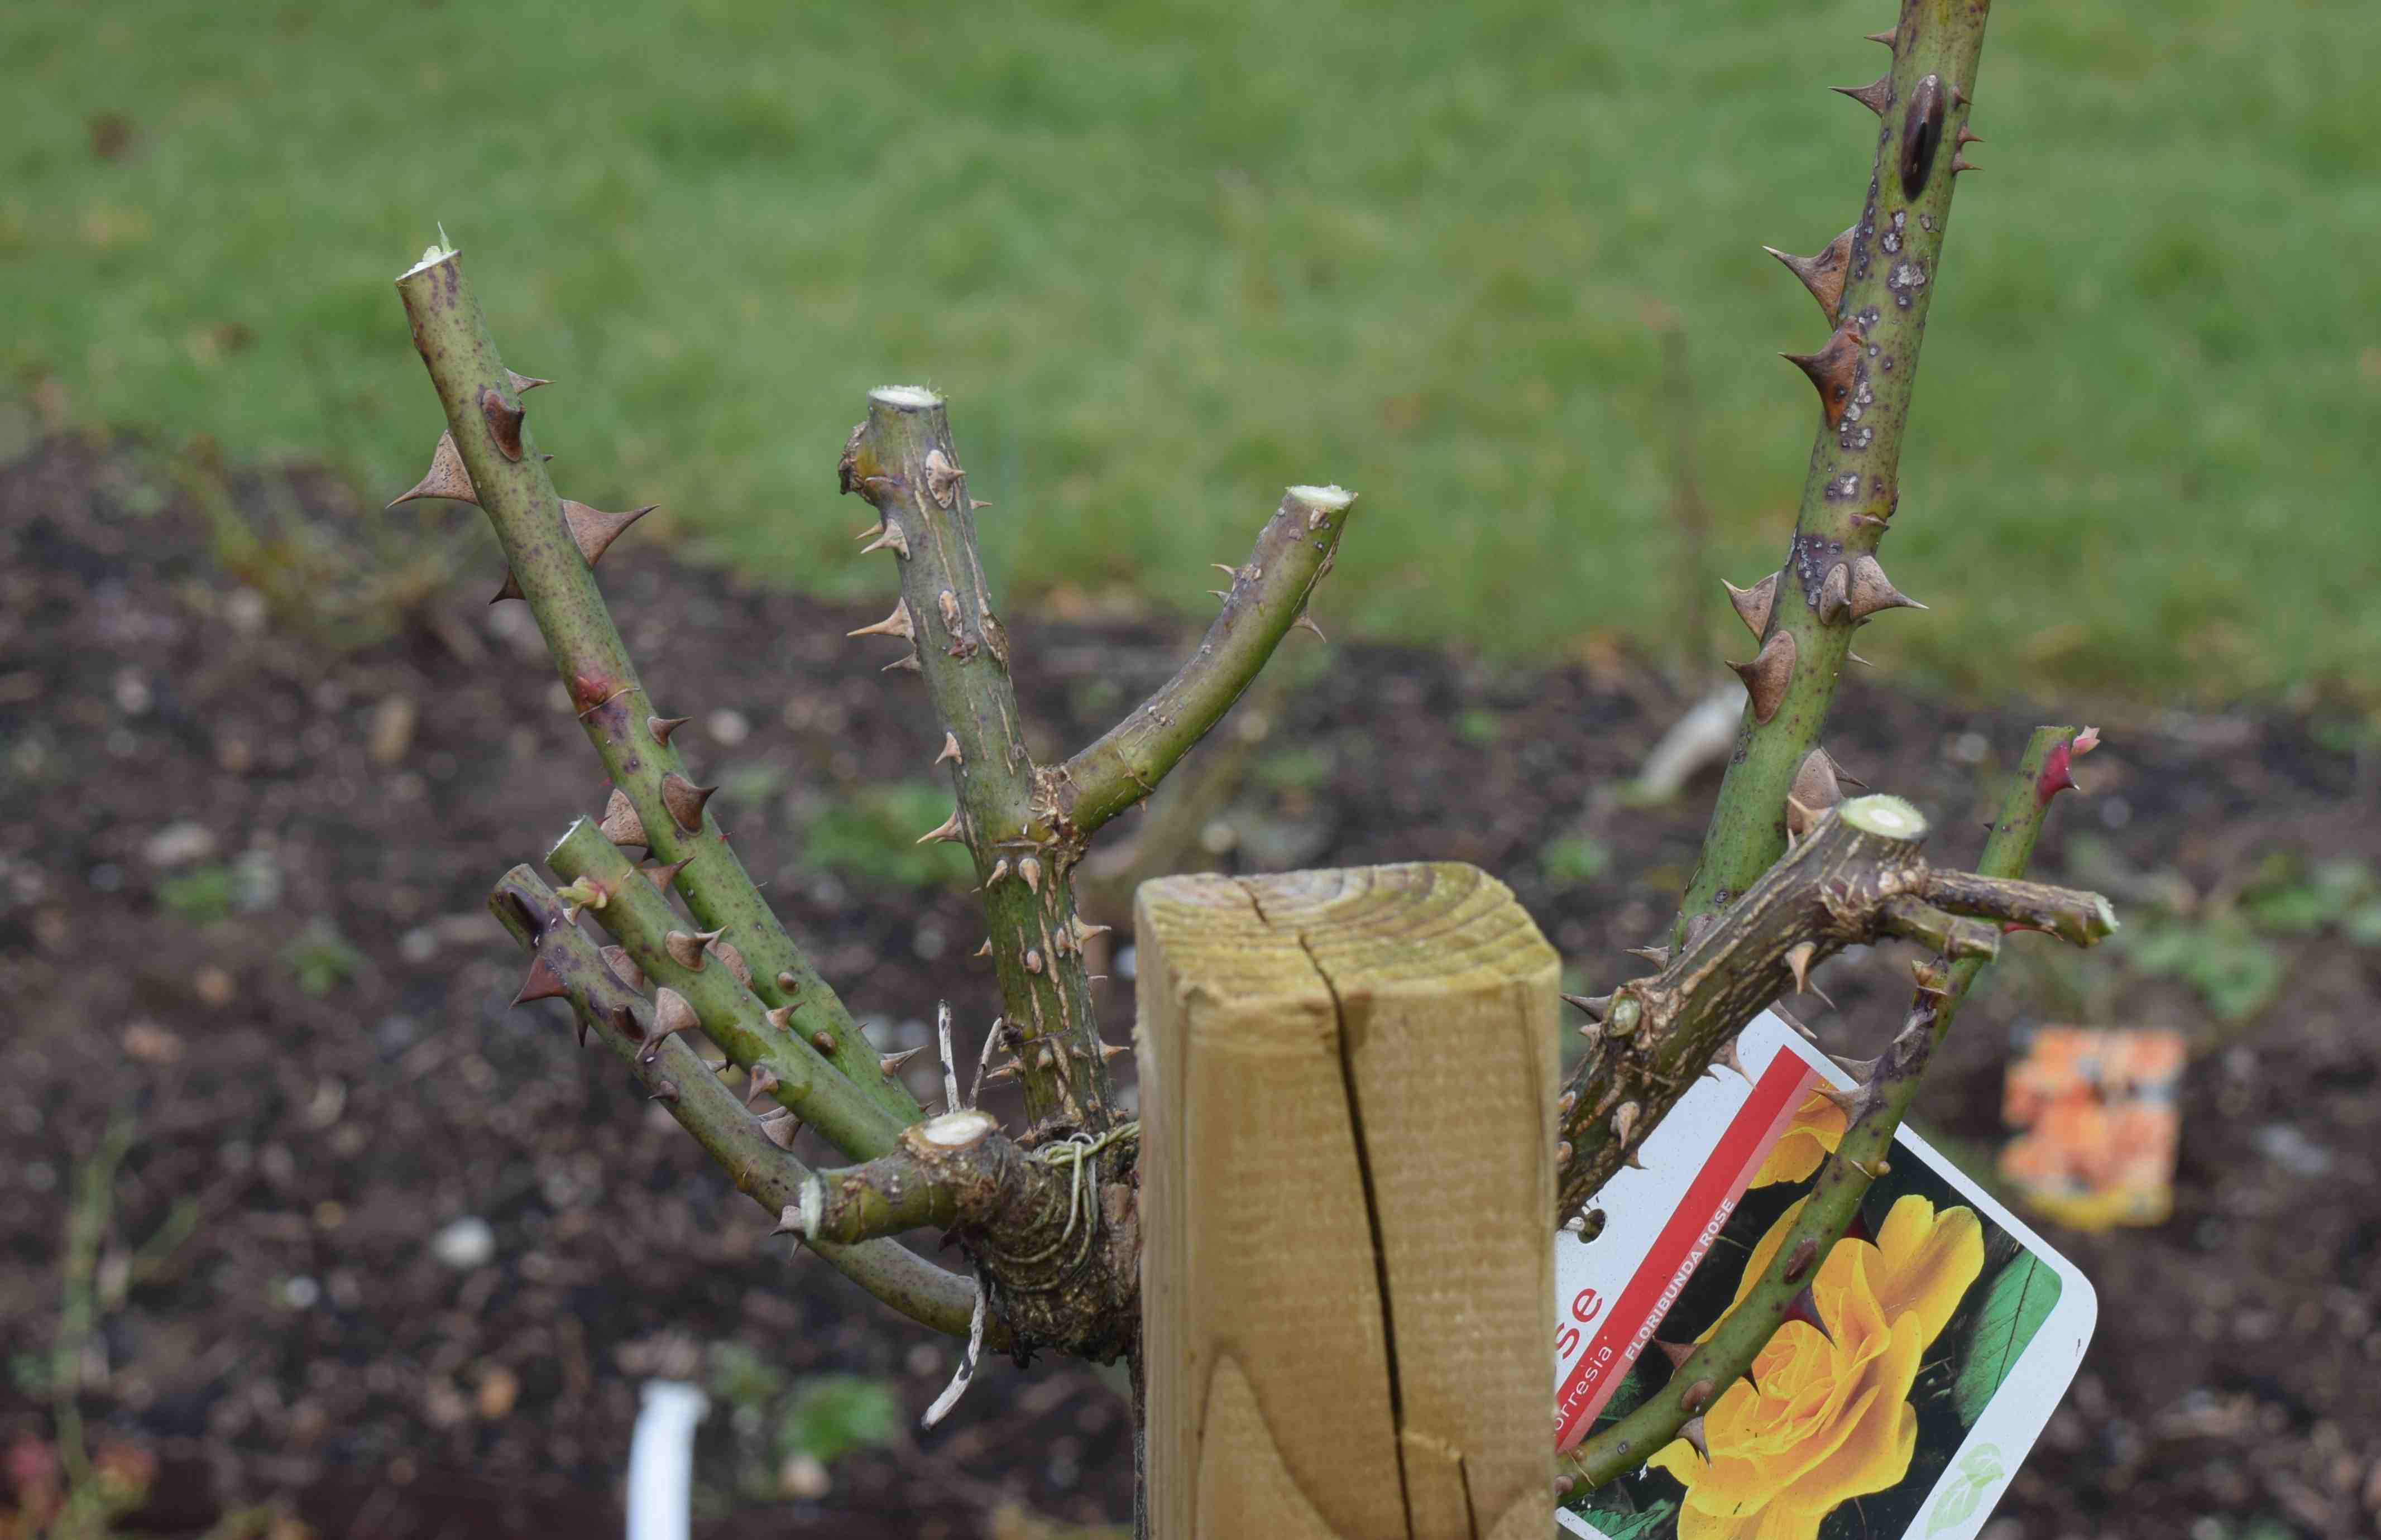 How to prune a rose bush - So Here Is The Rose Pruned With Just One More Shoot To Cut Back I Do Not Always Think That Hybrid Tea Large Flowered Roses Are Very Satisfactory For